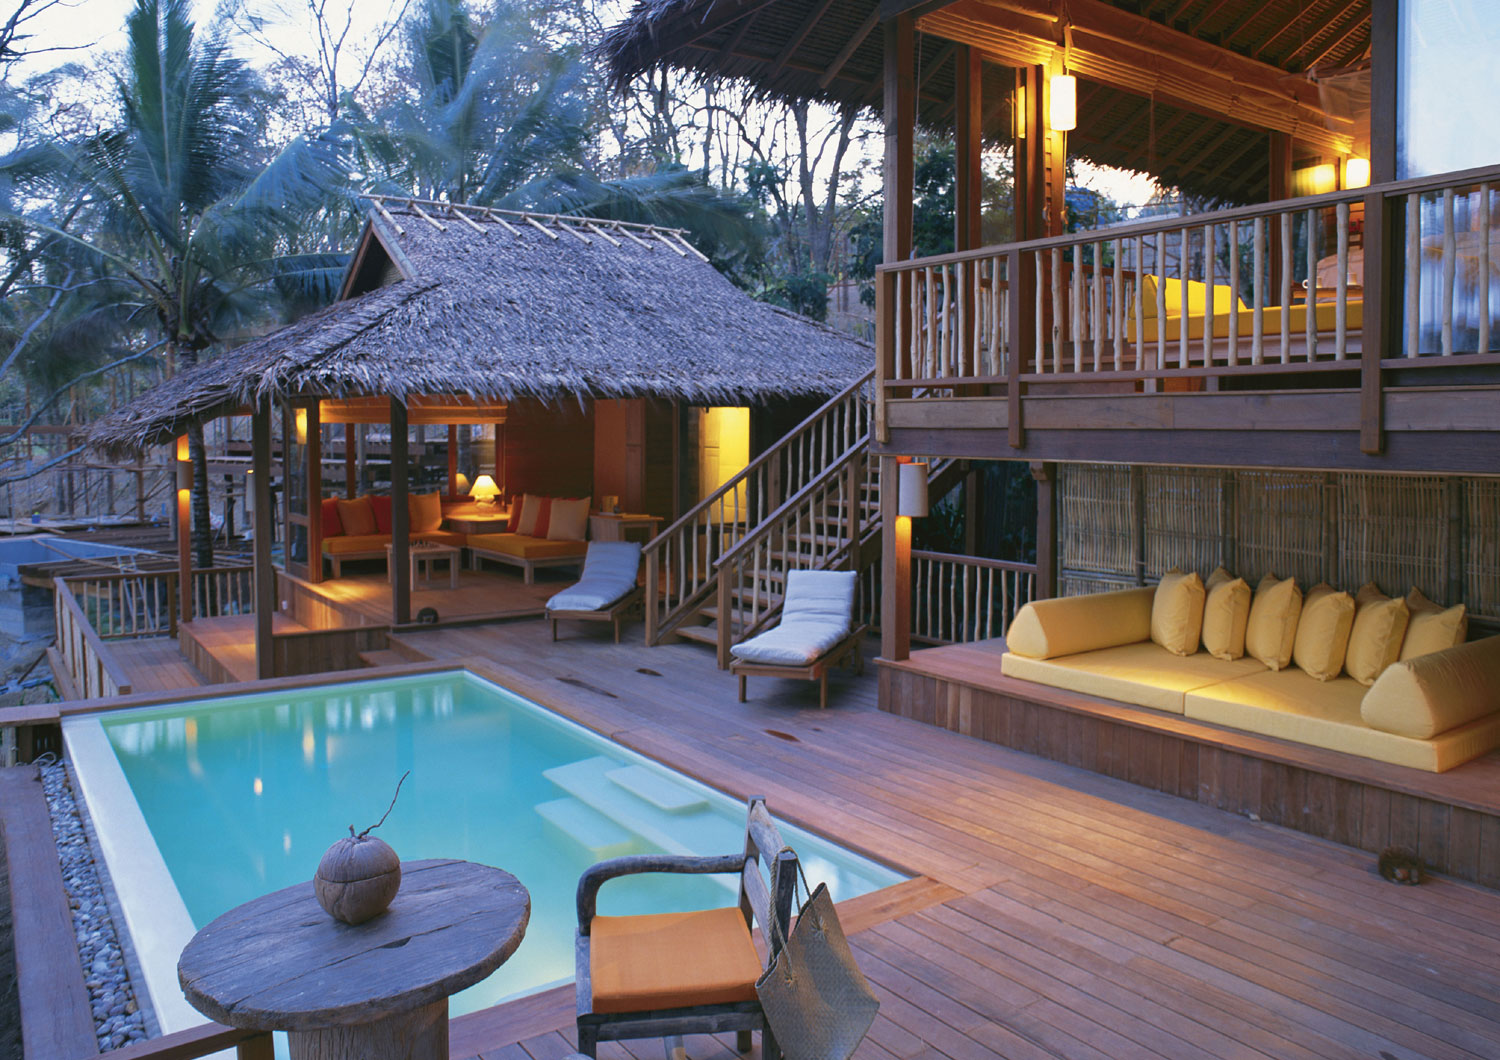 tropical house with tropical pool amazing home interiortropical house houseideatropical house with tropical pool 2